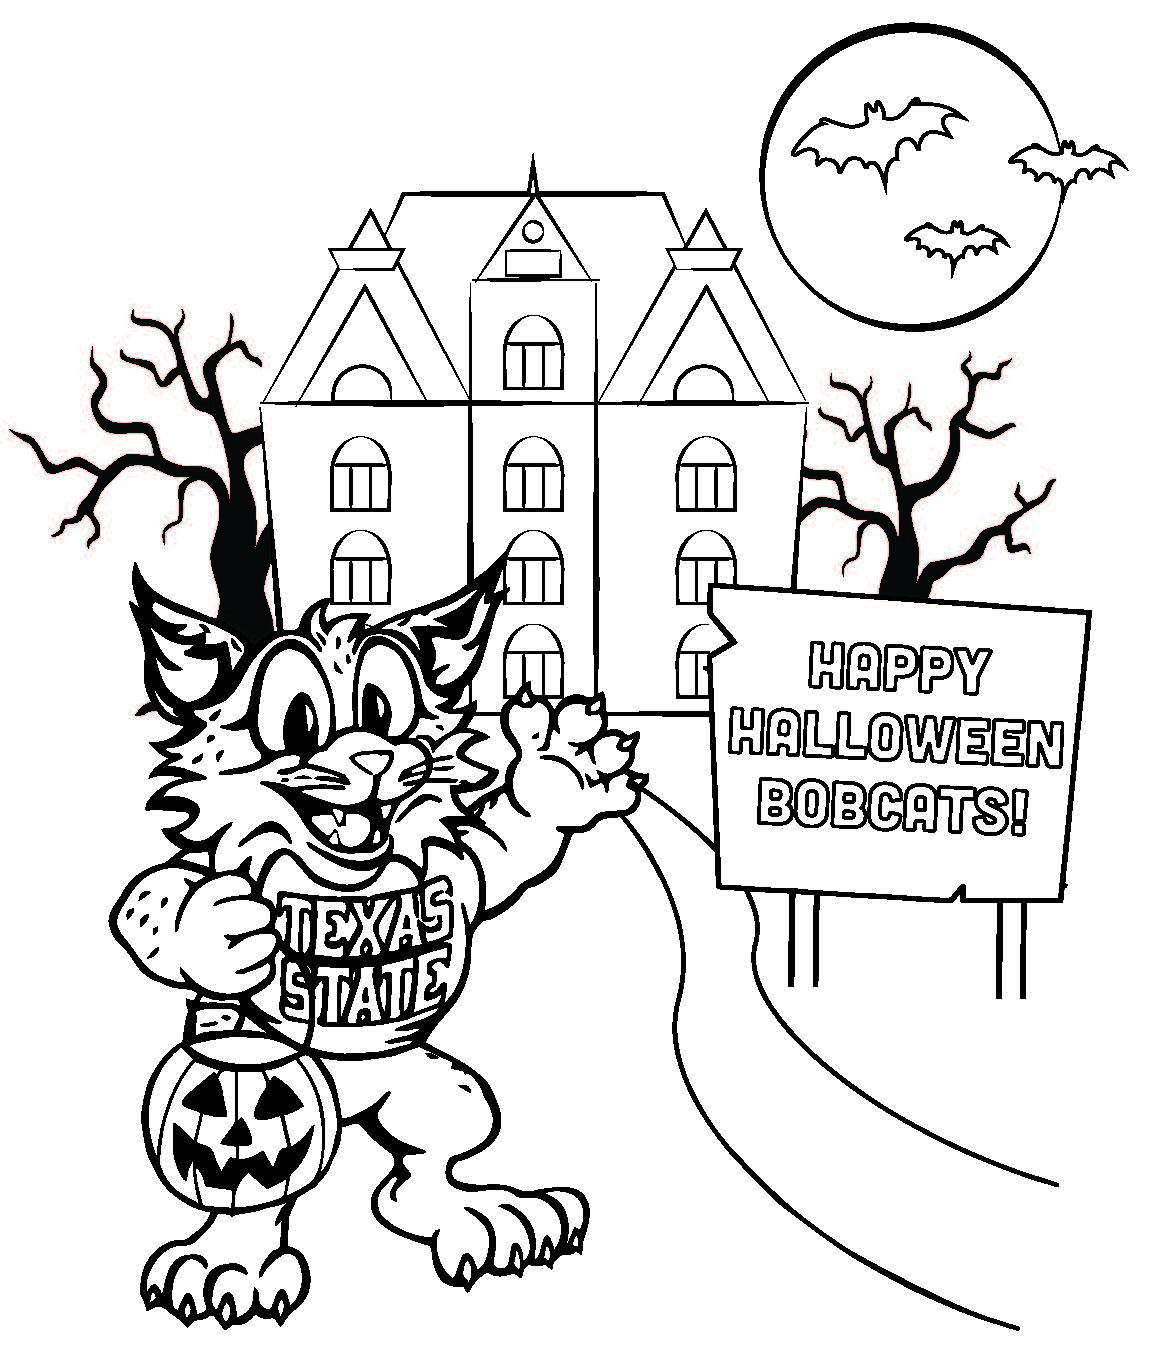 Halloween Bobcat Coloring Sheet From The Texas State